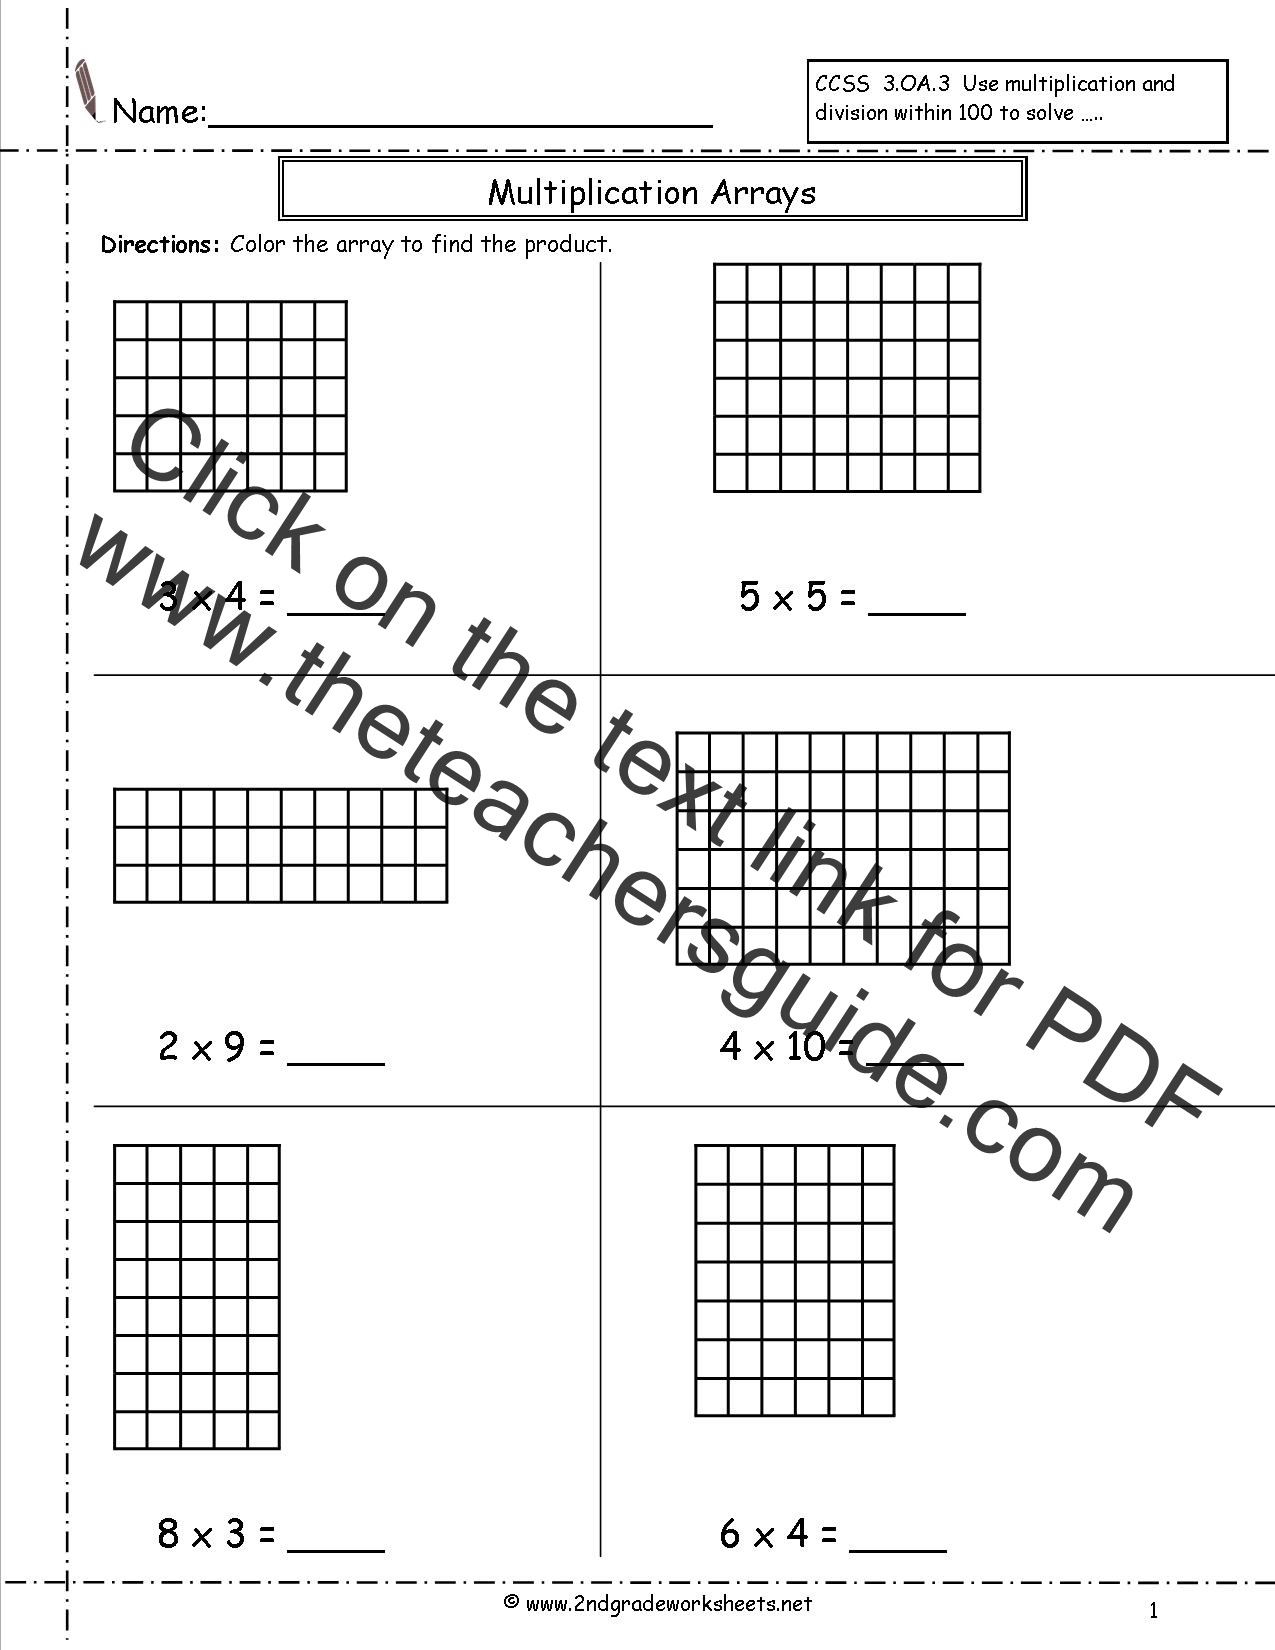 math worksheet : multiplication arrays worksheets : Area Models For Multiplication Worksheets